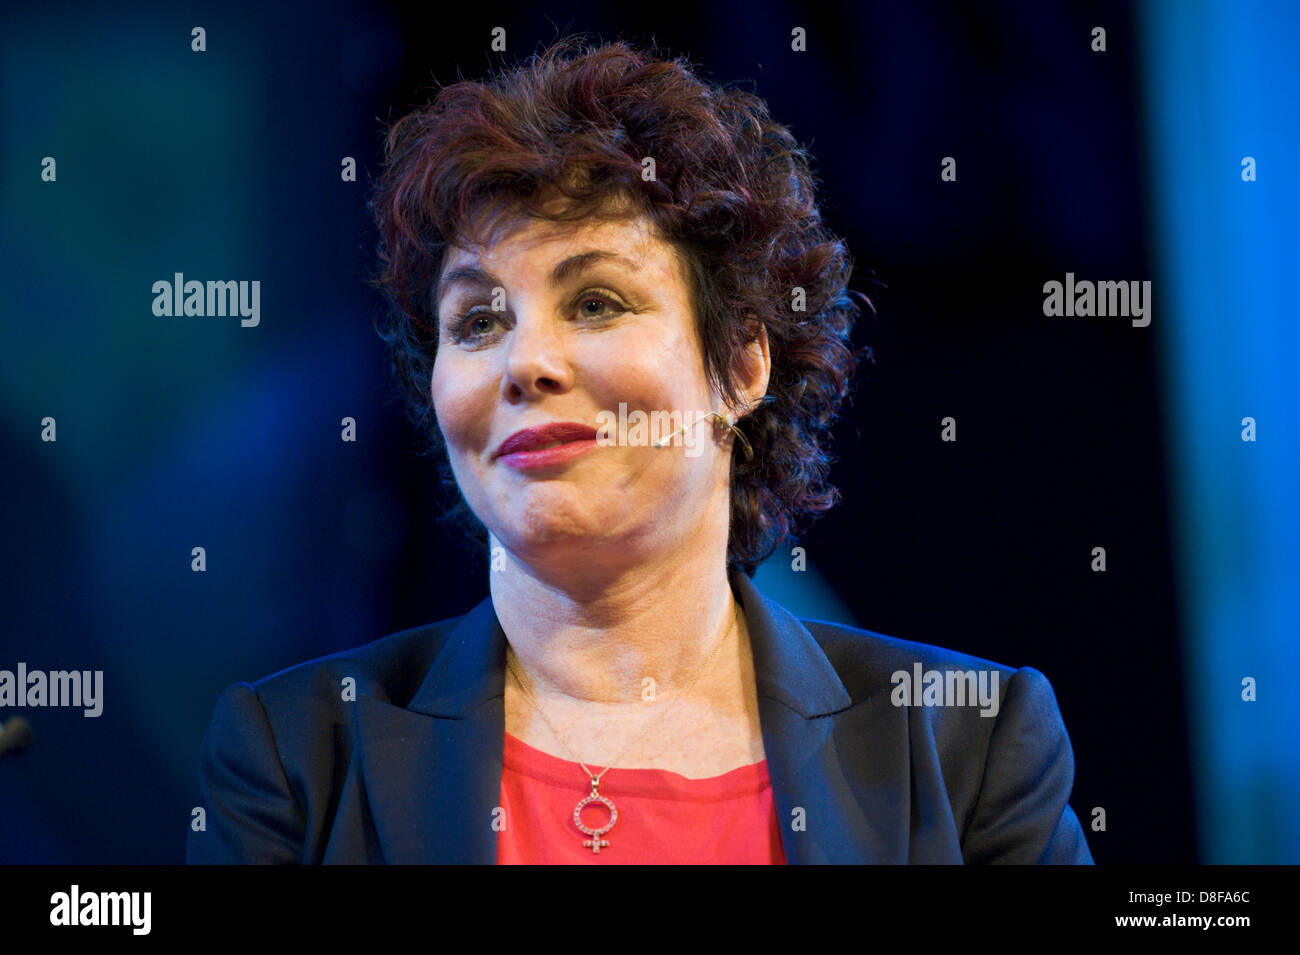 Ruby Wax Stock Photos & Ruby Wax Stock Images - Alamy